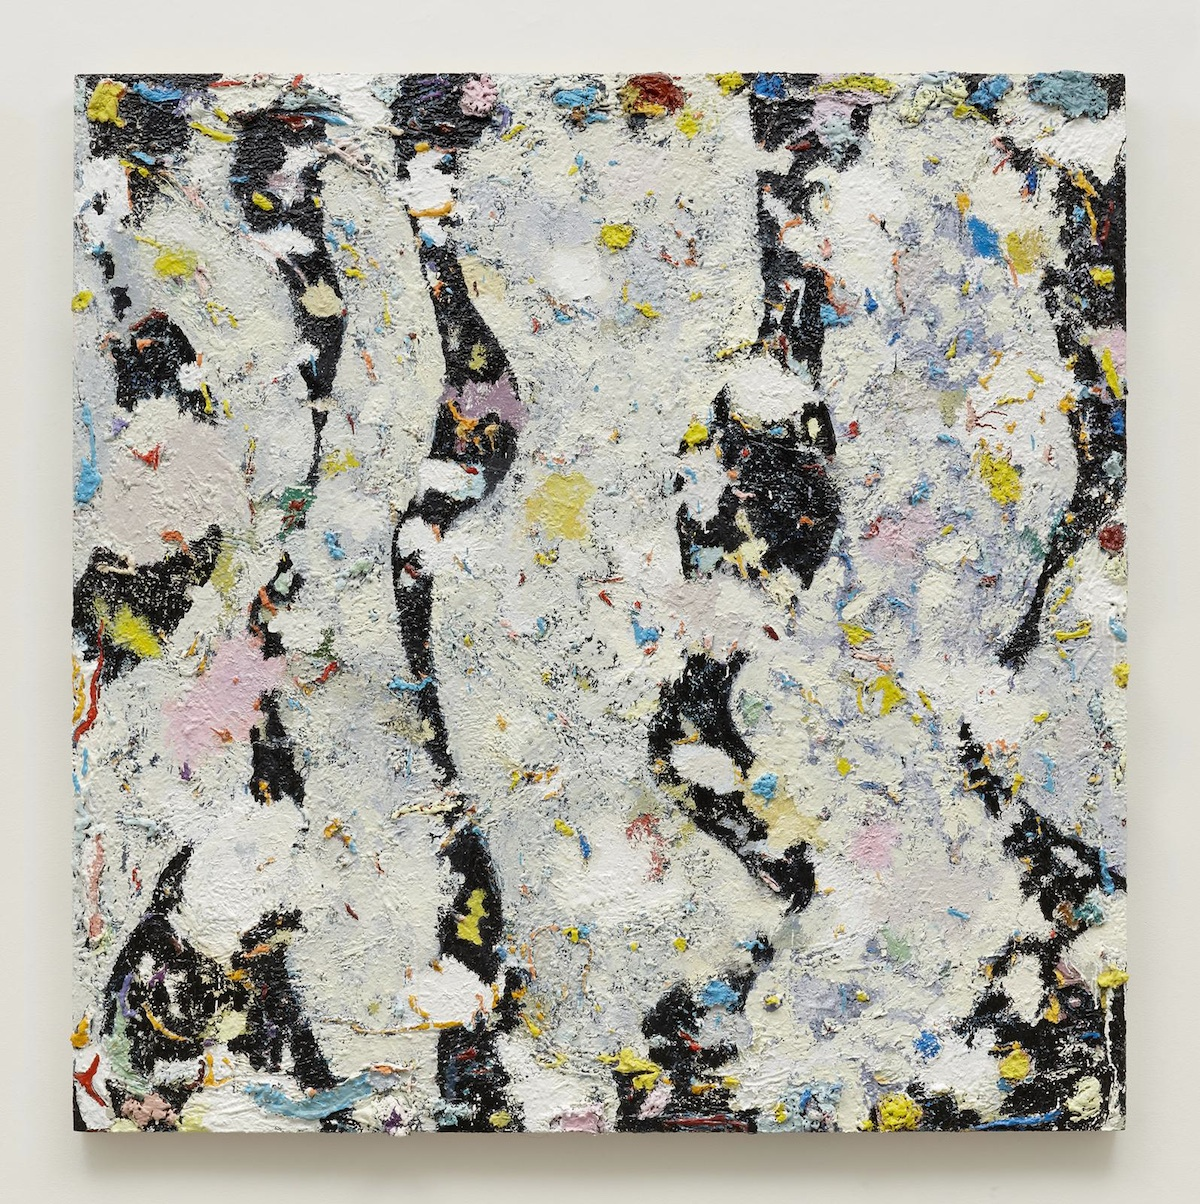 Phillip Allen, Deepdrippings (International Version), 2017, oil on board, 183 x 183 cm, image courtesy the artist and Kerlin Gallery. Photography by Denis Mortell.